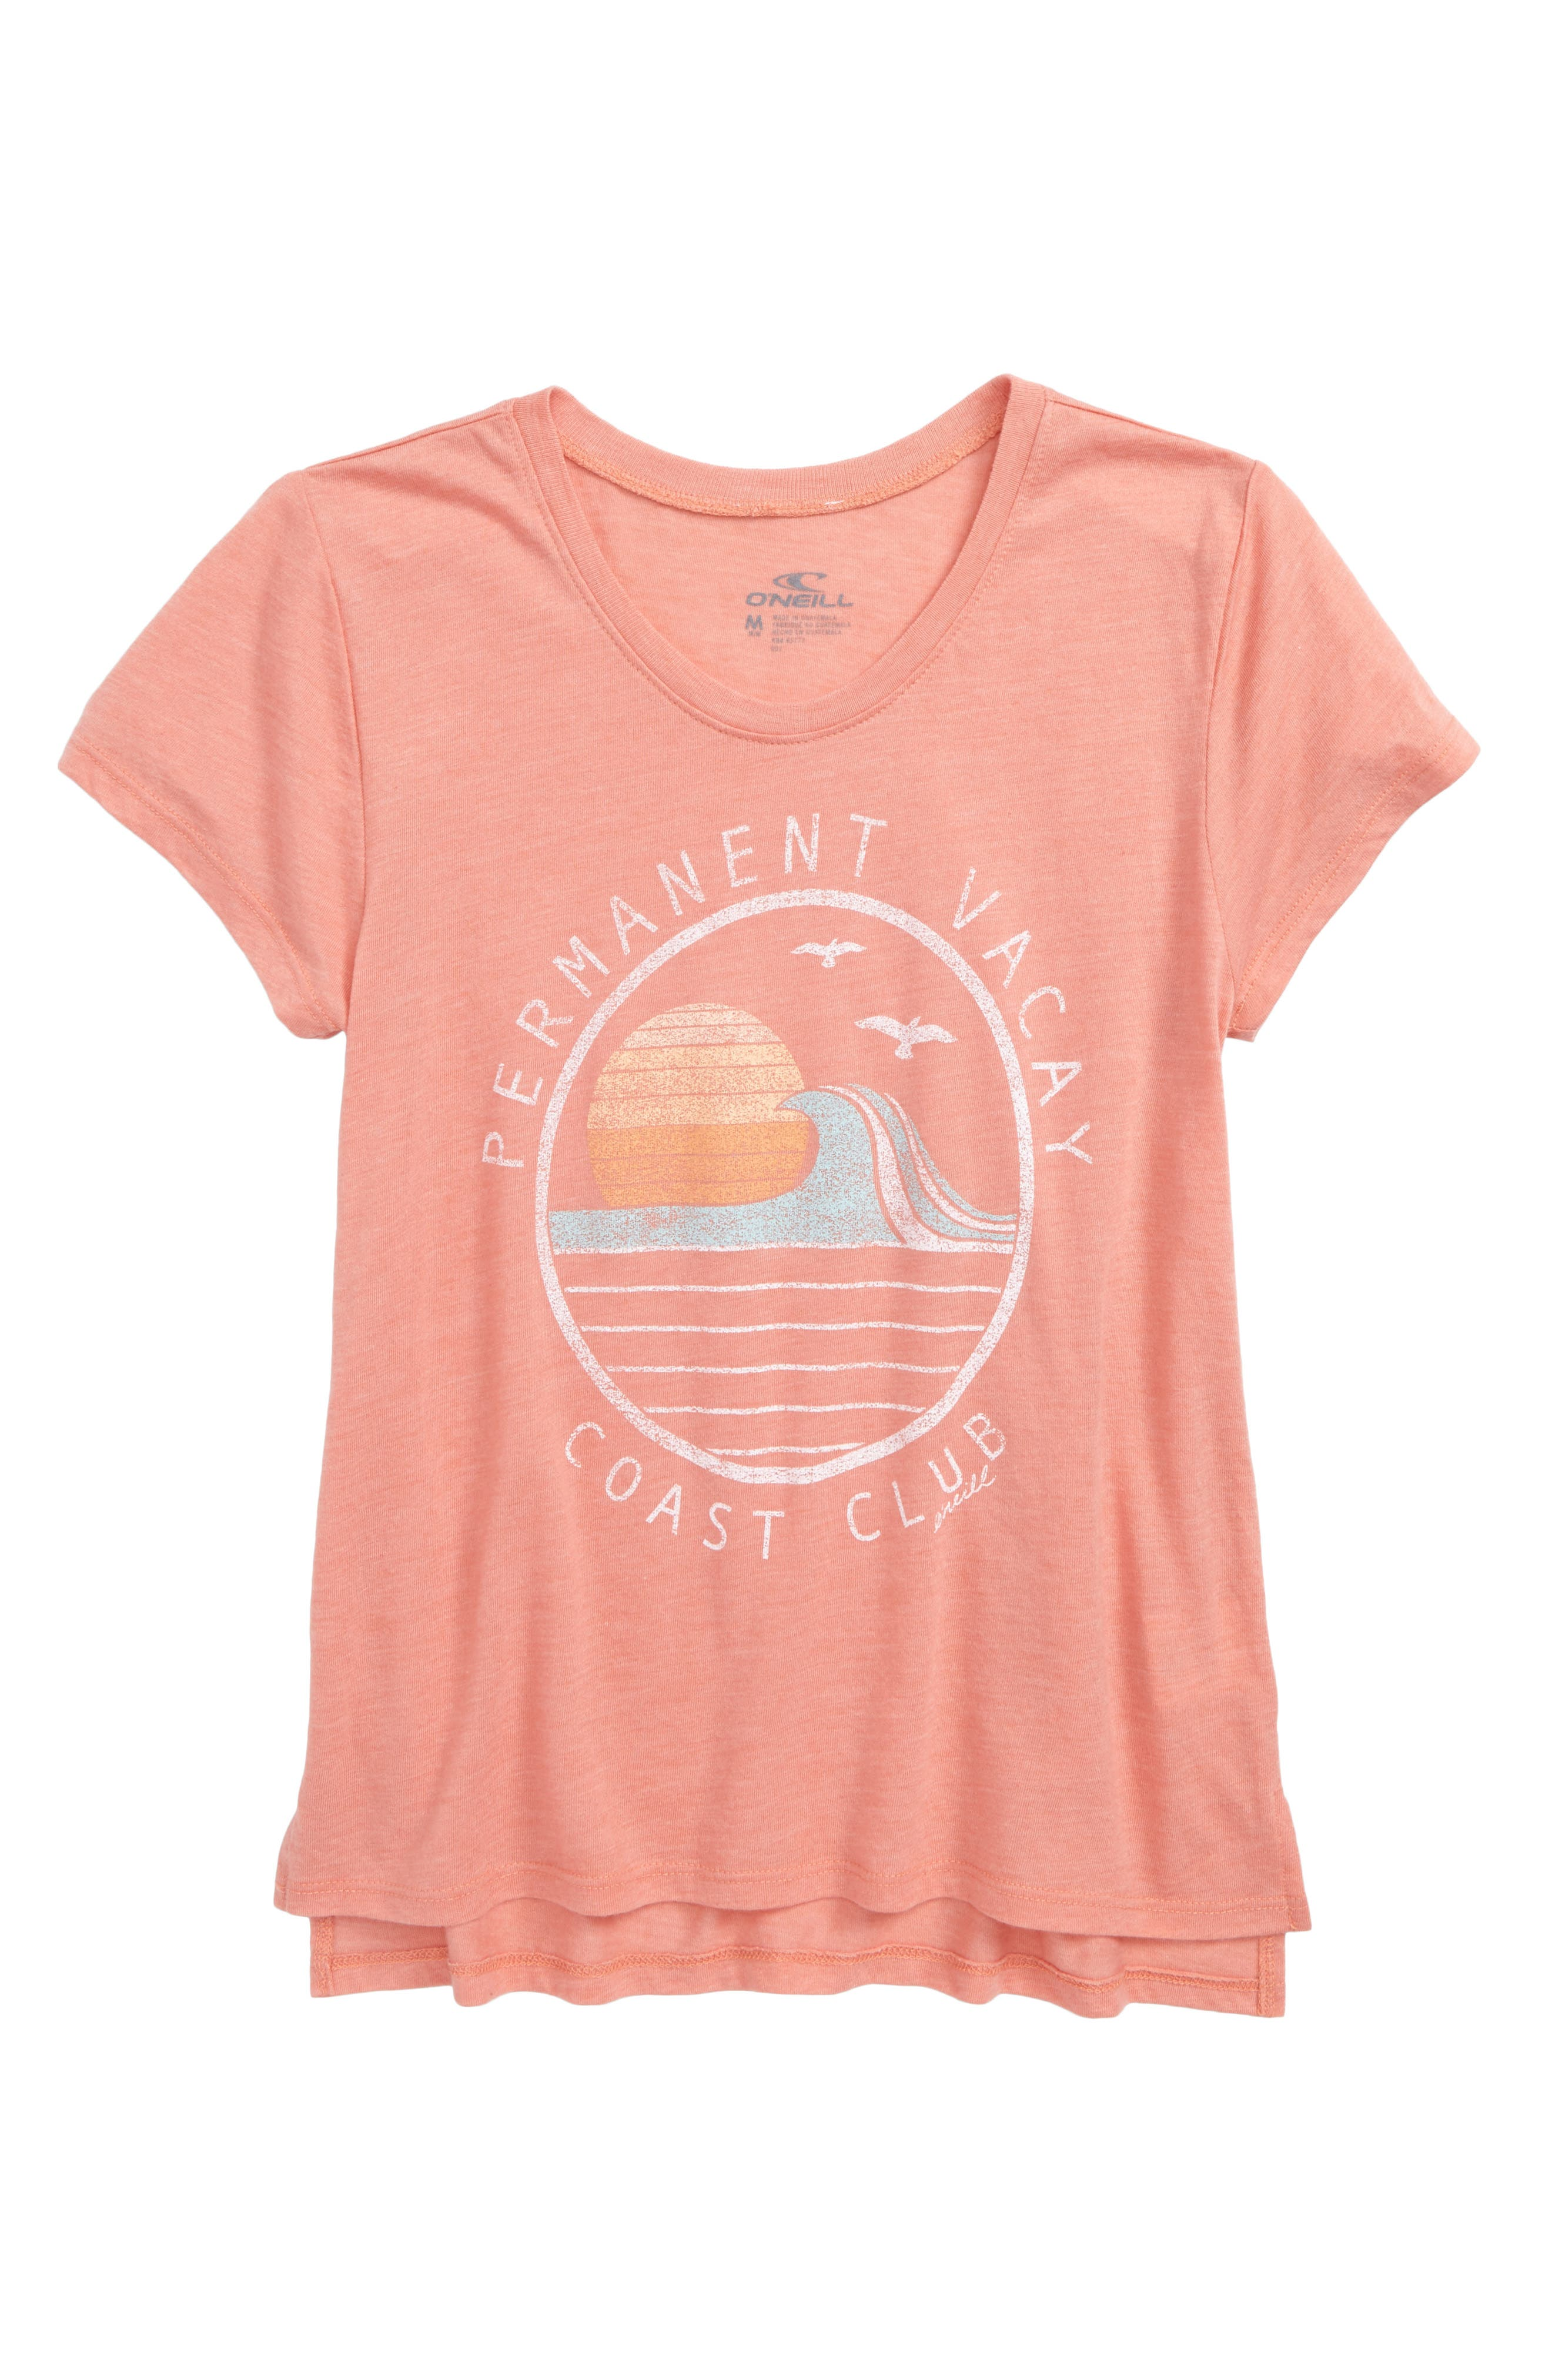 Vacay Club Graphic Tee,                             Main thumbnail 1, color,                             Terracotta- Cla